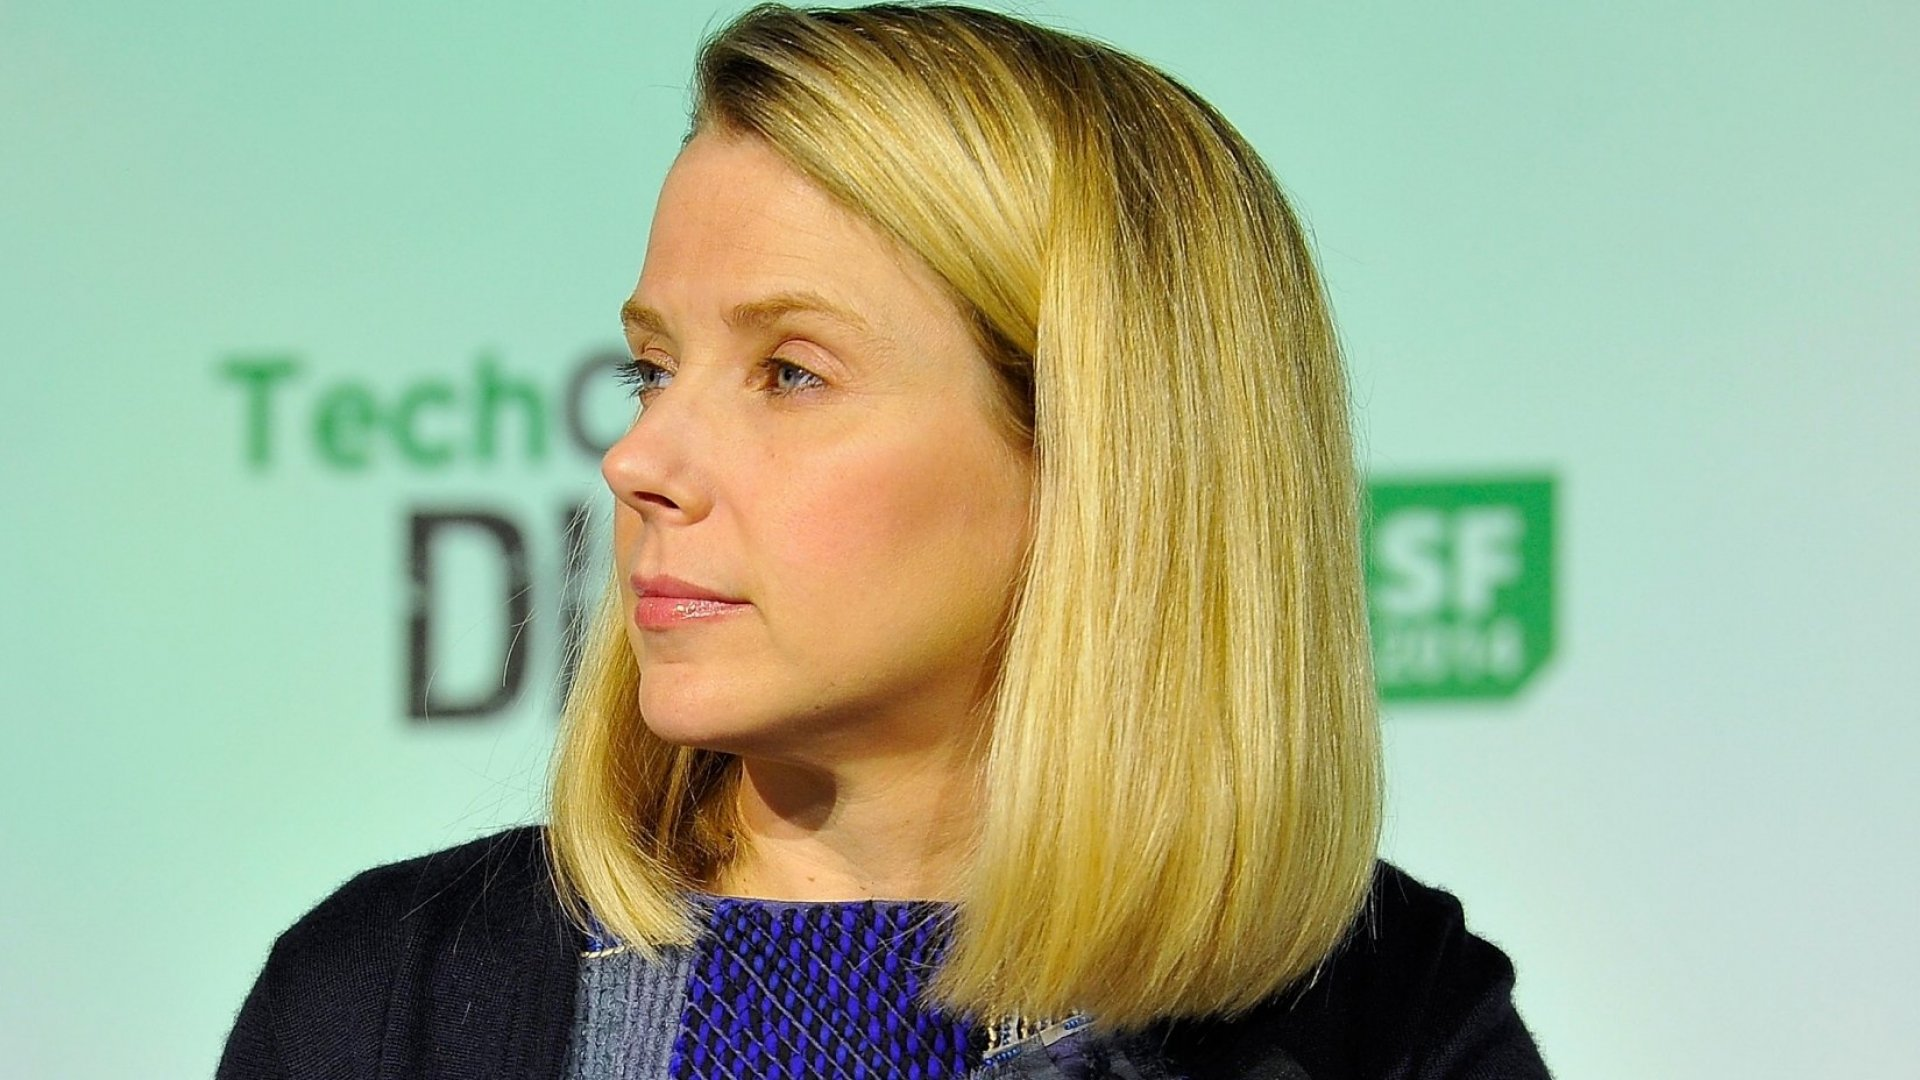 What Other CEOs Can Learn From Marissa Mayer's Attempts to Turn Yahoo Around